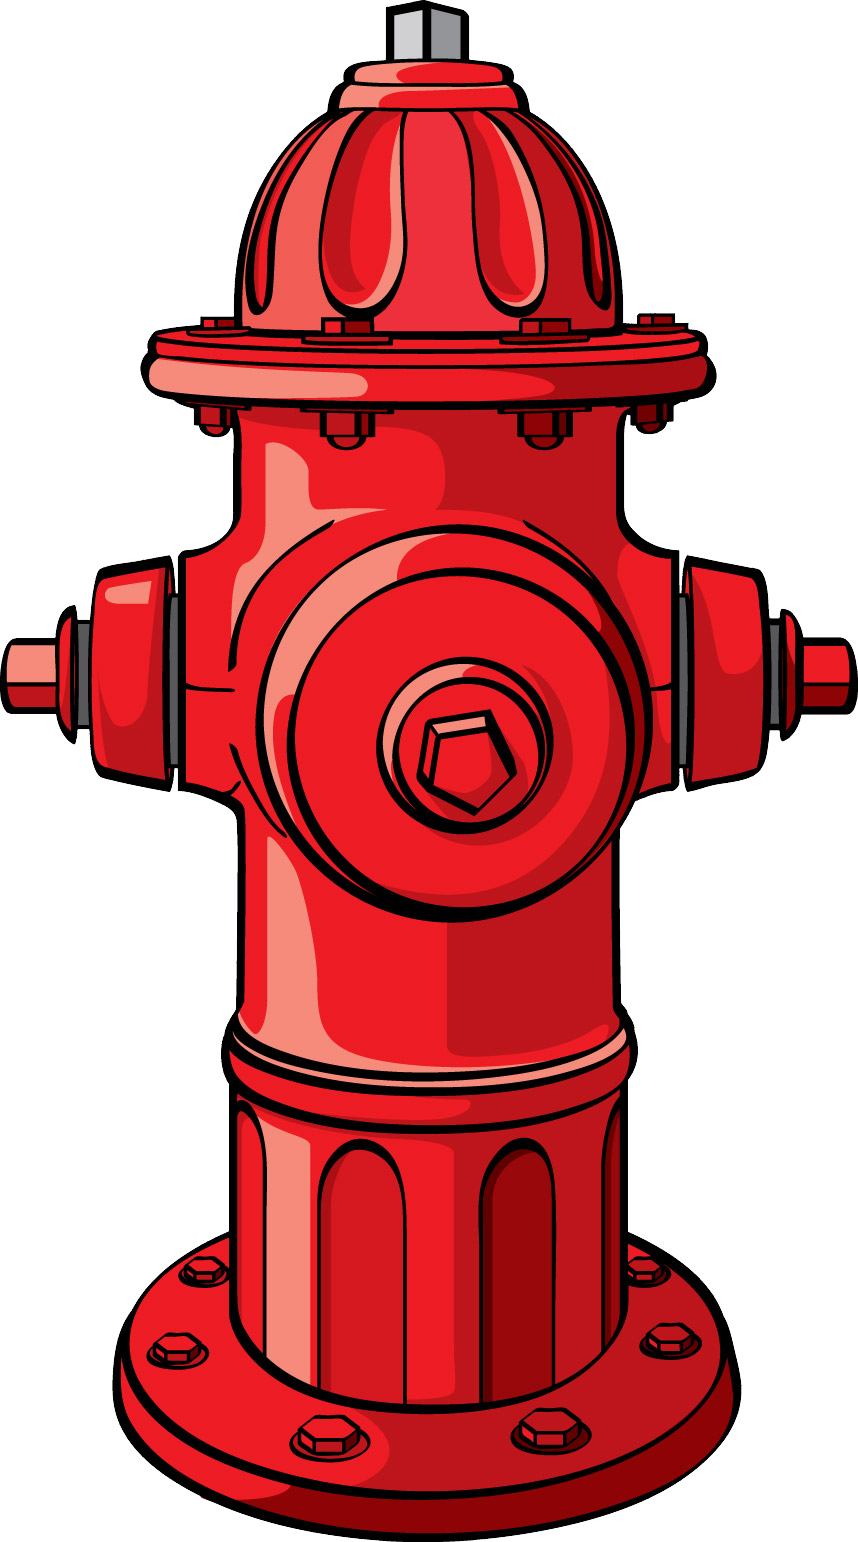 Fire Hydrant Png Image Fire Hydrant Fireman Party Paw Patrol Party